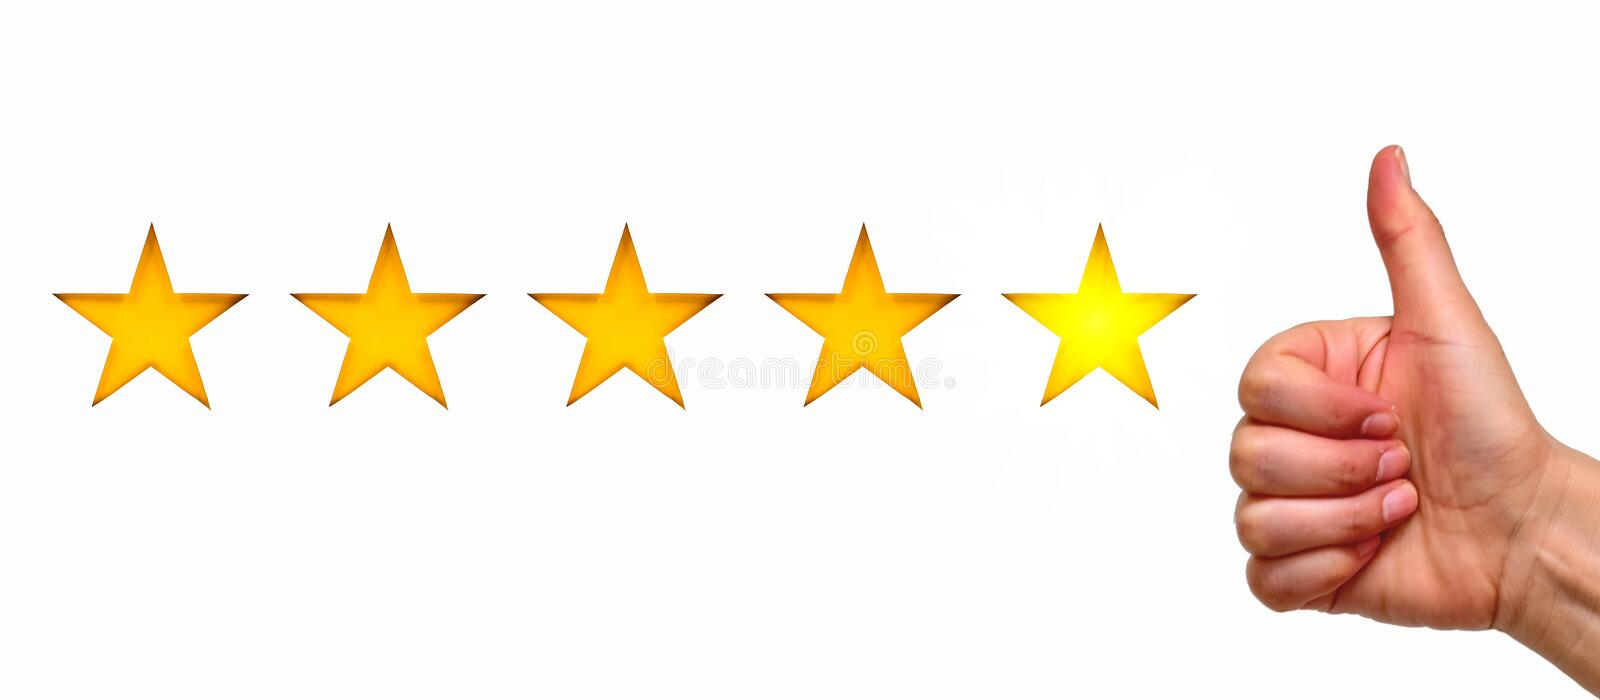 A woman showing hand sign thumb up and five star symbol, the concept of a positive rating, reviews and feedback. White background stock photos